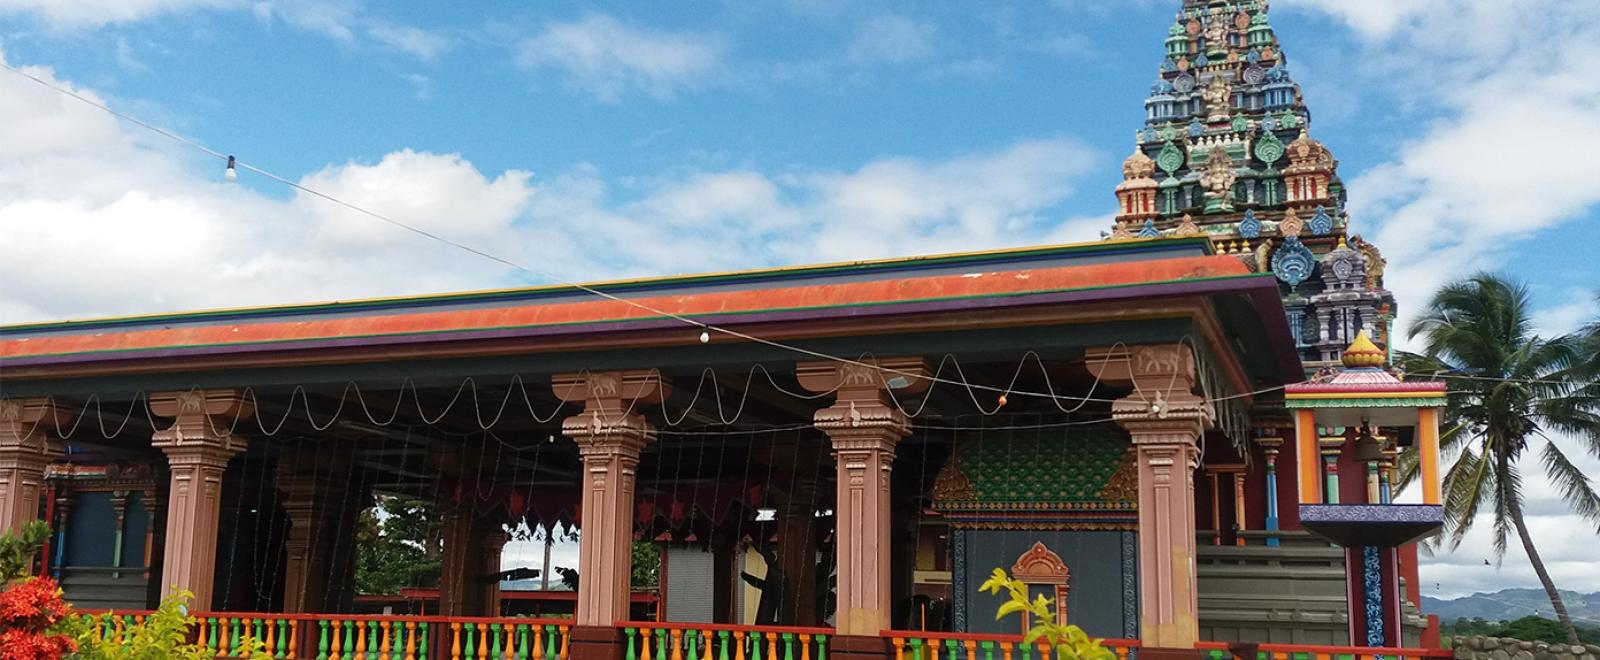 A Hindu temple in Nadi, a town where Projects Abroad volunteer projects are based.